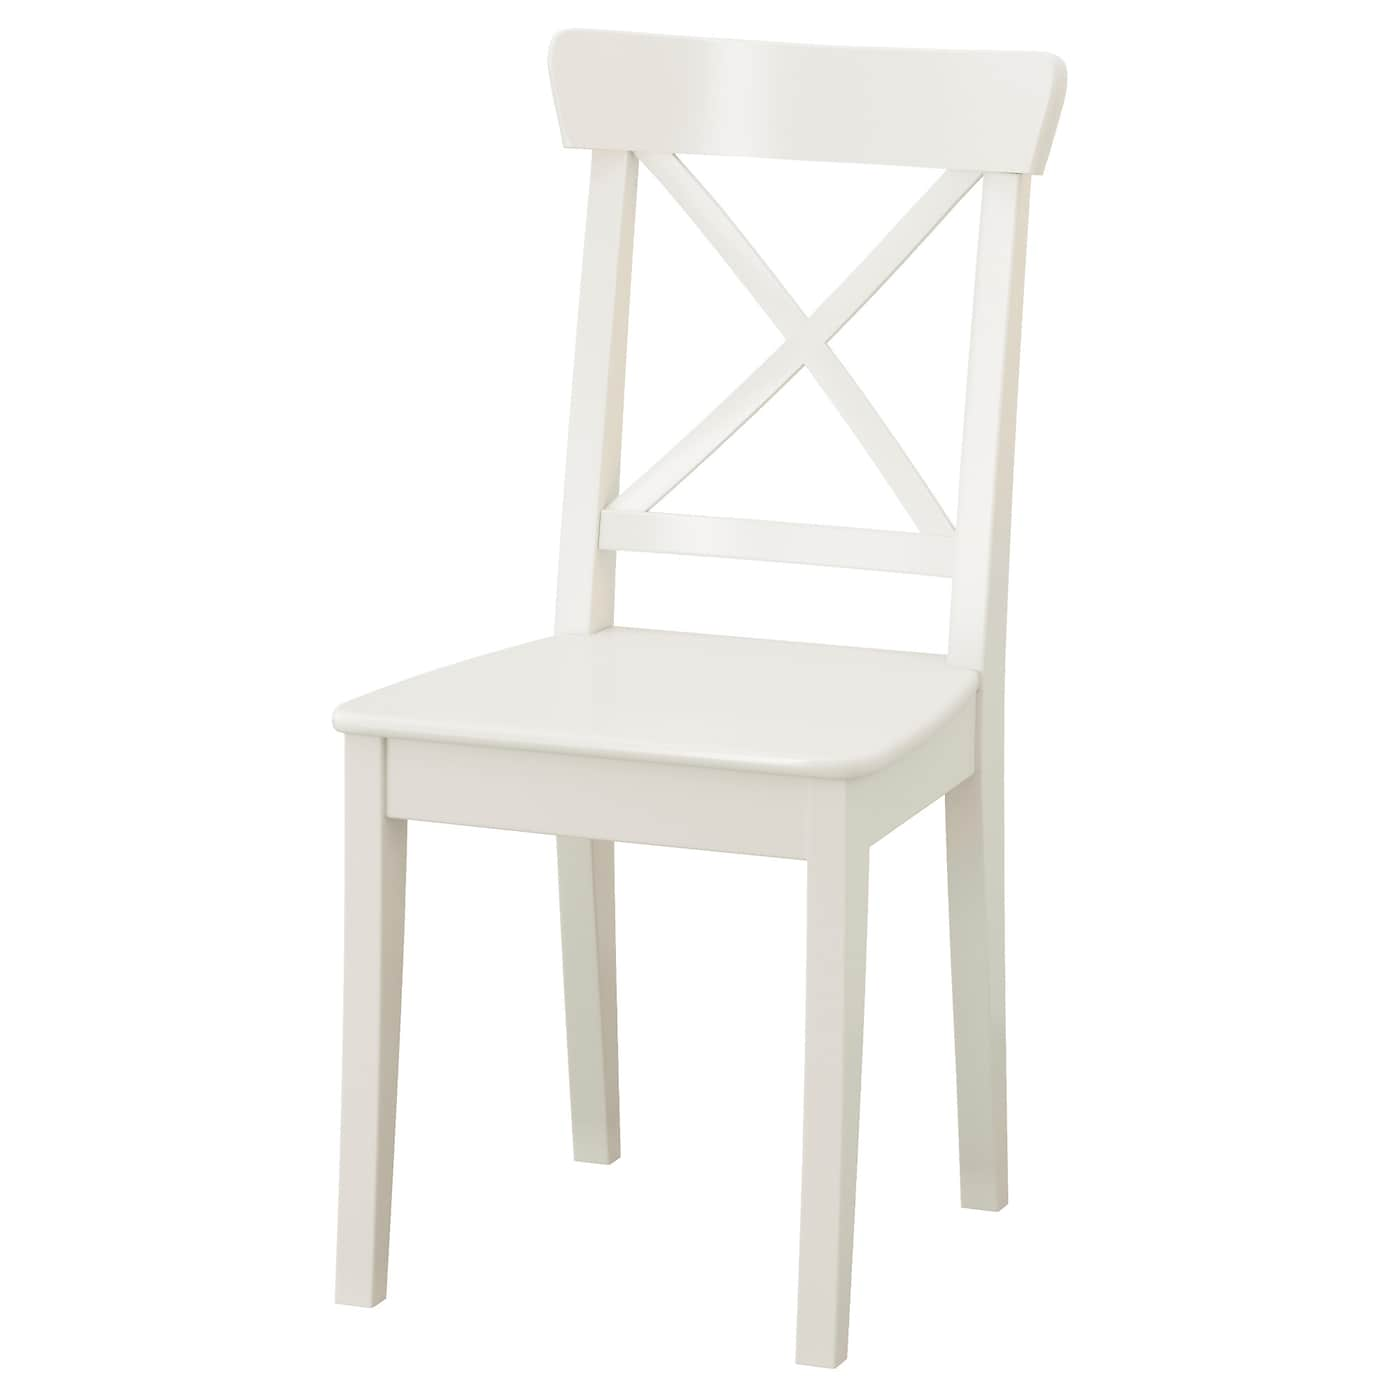 White wooden chair images galleries for White wood dining room chairs